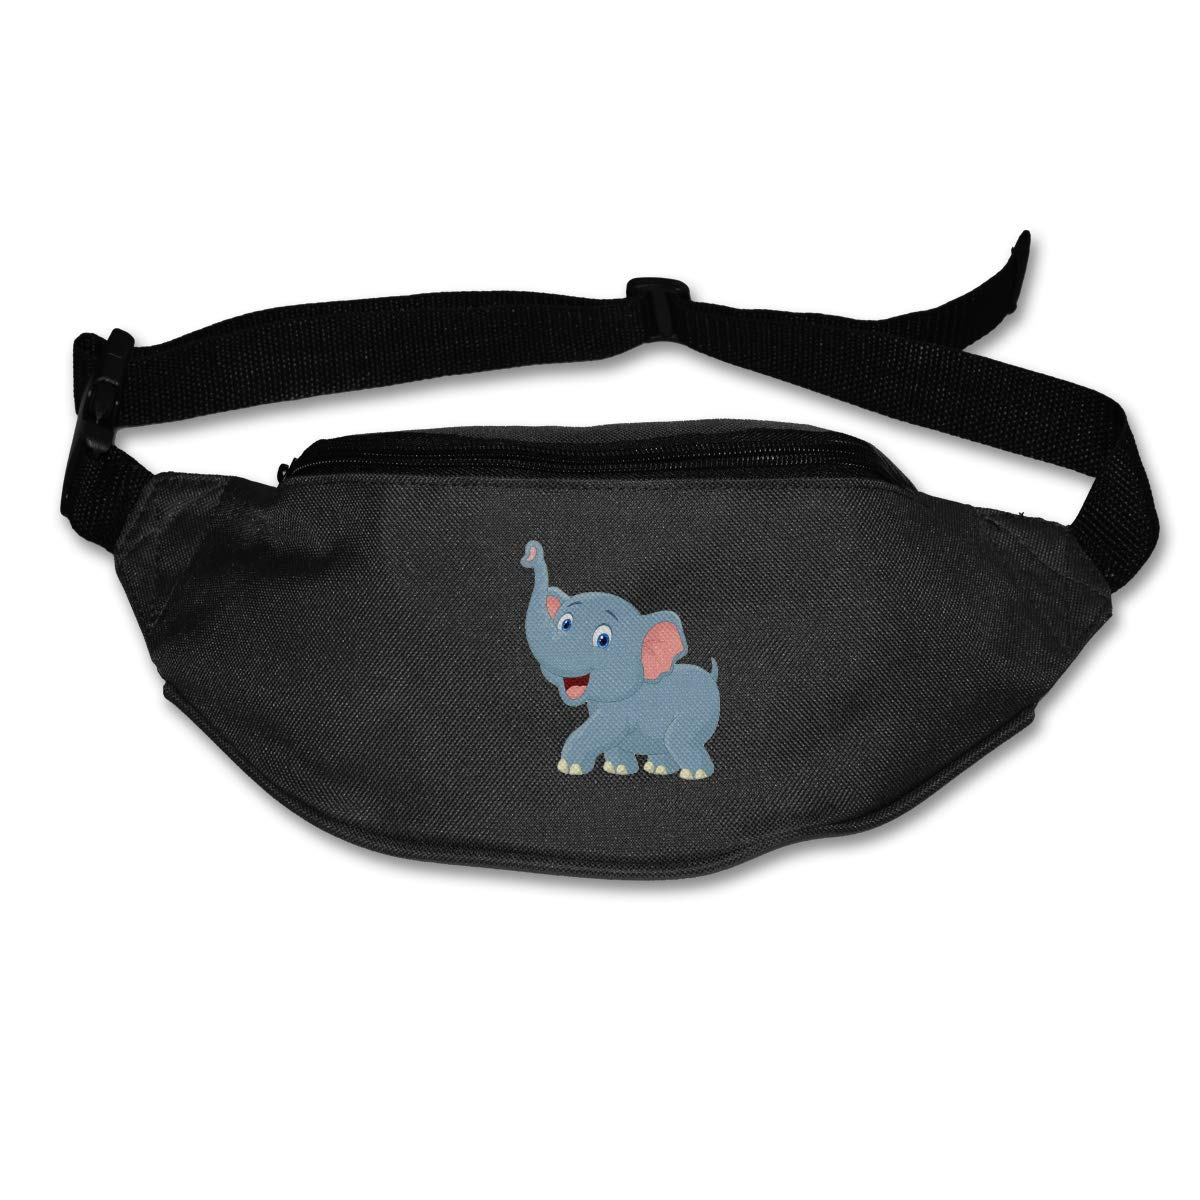 Waist Purse Cute Cartoon Elephant Graphic Unisex Outdoor Sports Pouch Fitness Runners Waist Bags